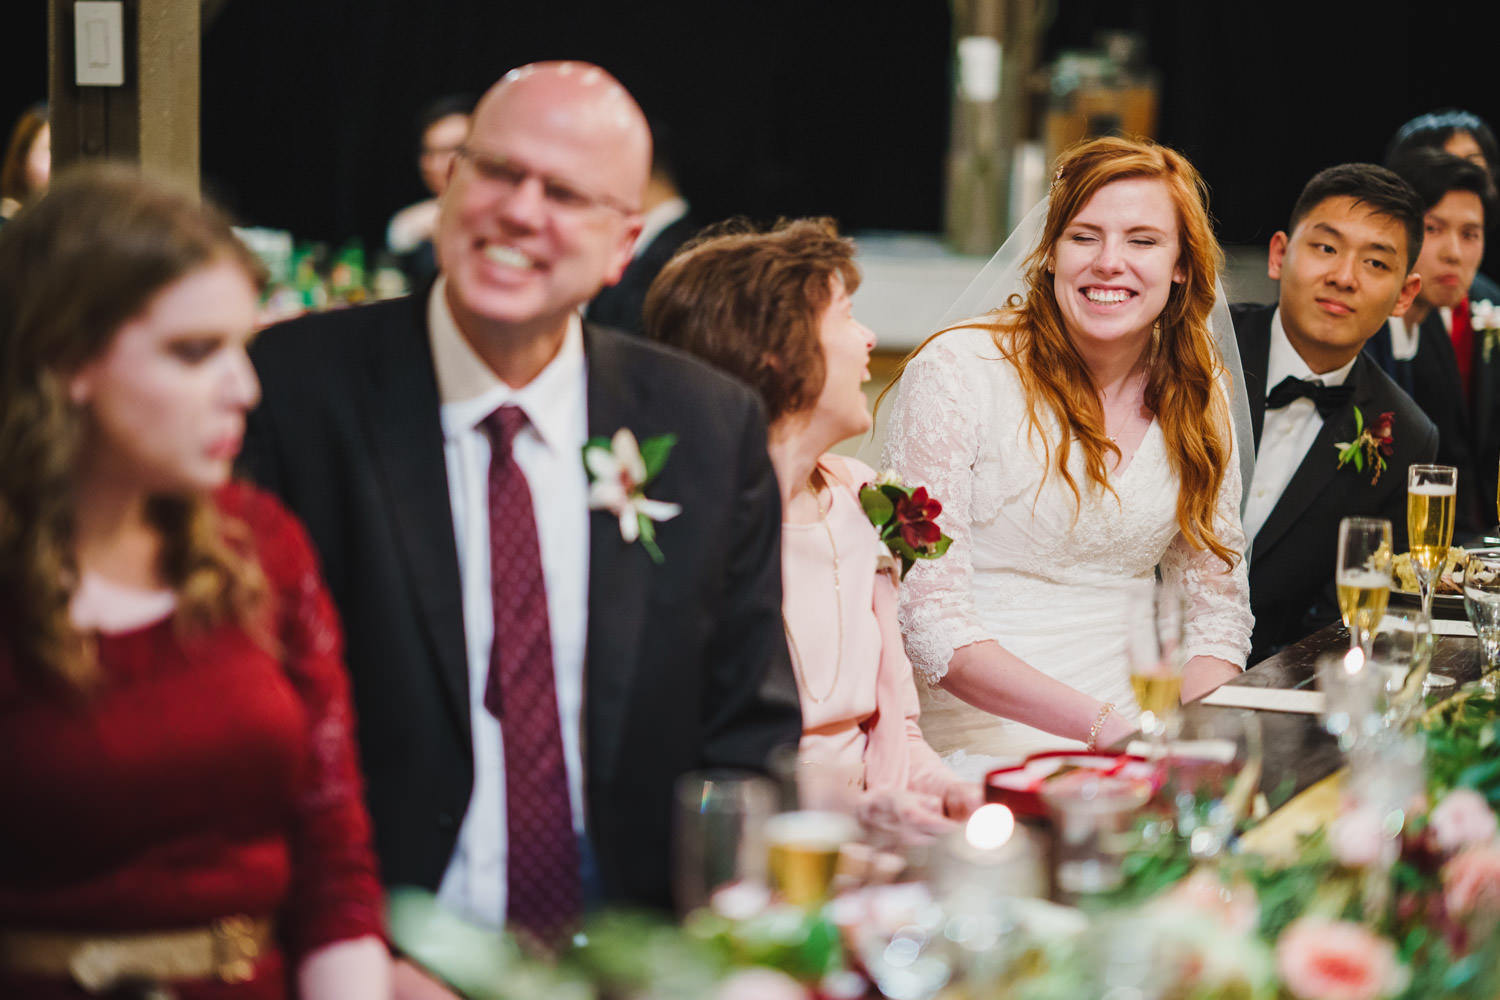 Pierpont Place wedding laughing at reception photo